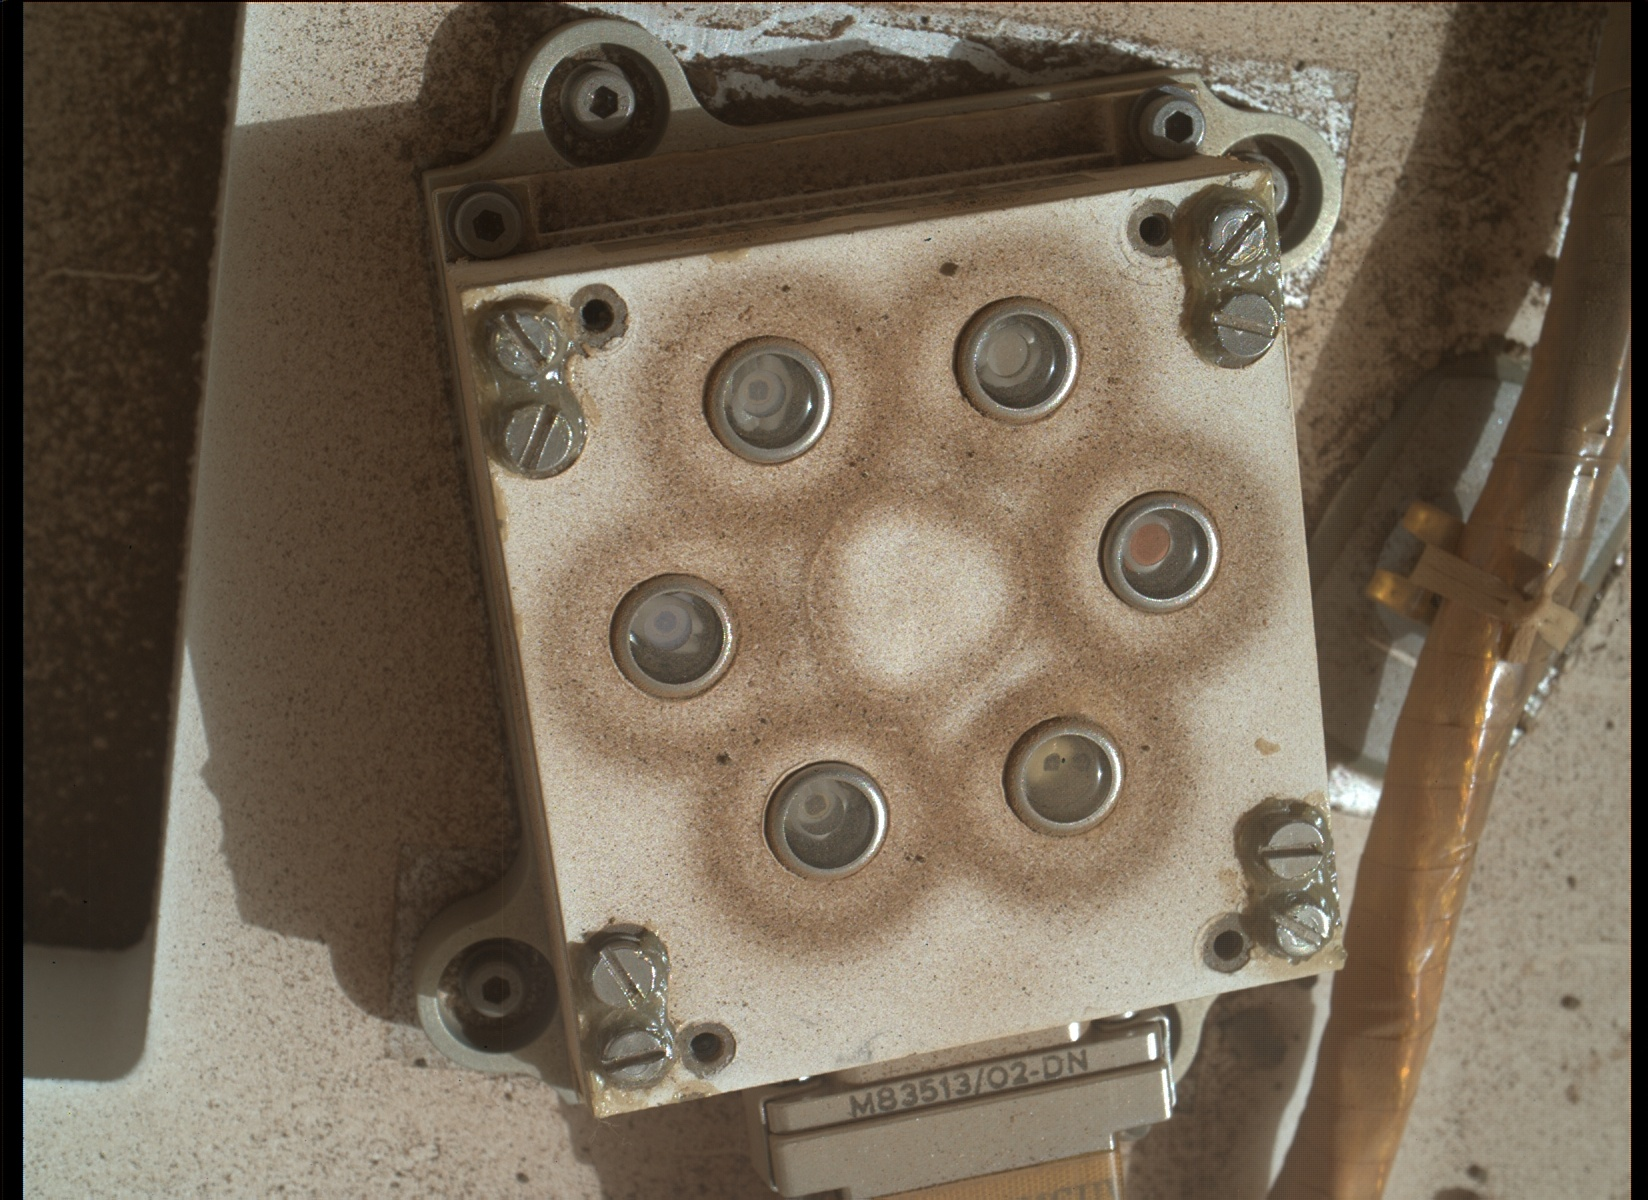 Nasa's Mars rover Curiosity acquired this image using its Mars Hand Lens Imager (MAHLI) on Sol 323